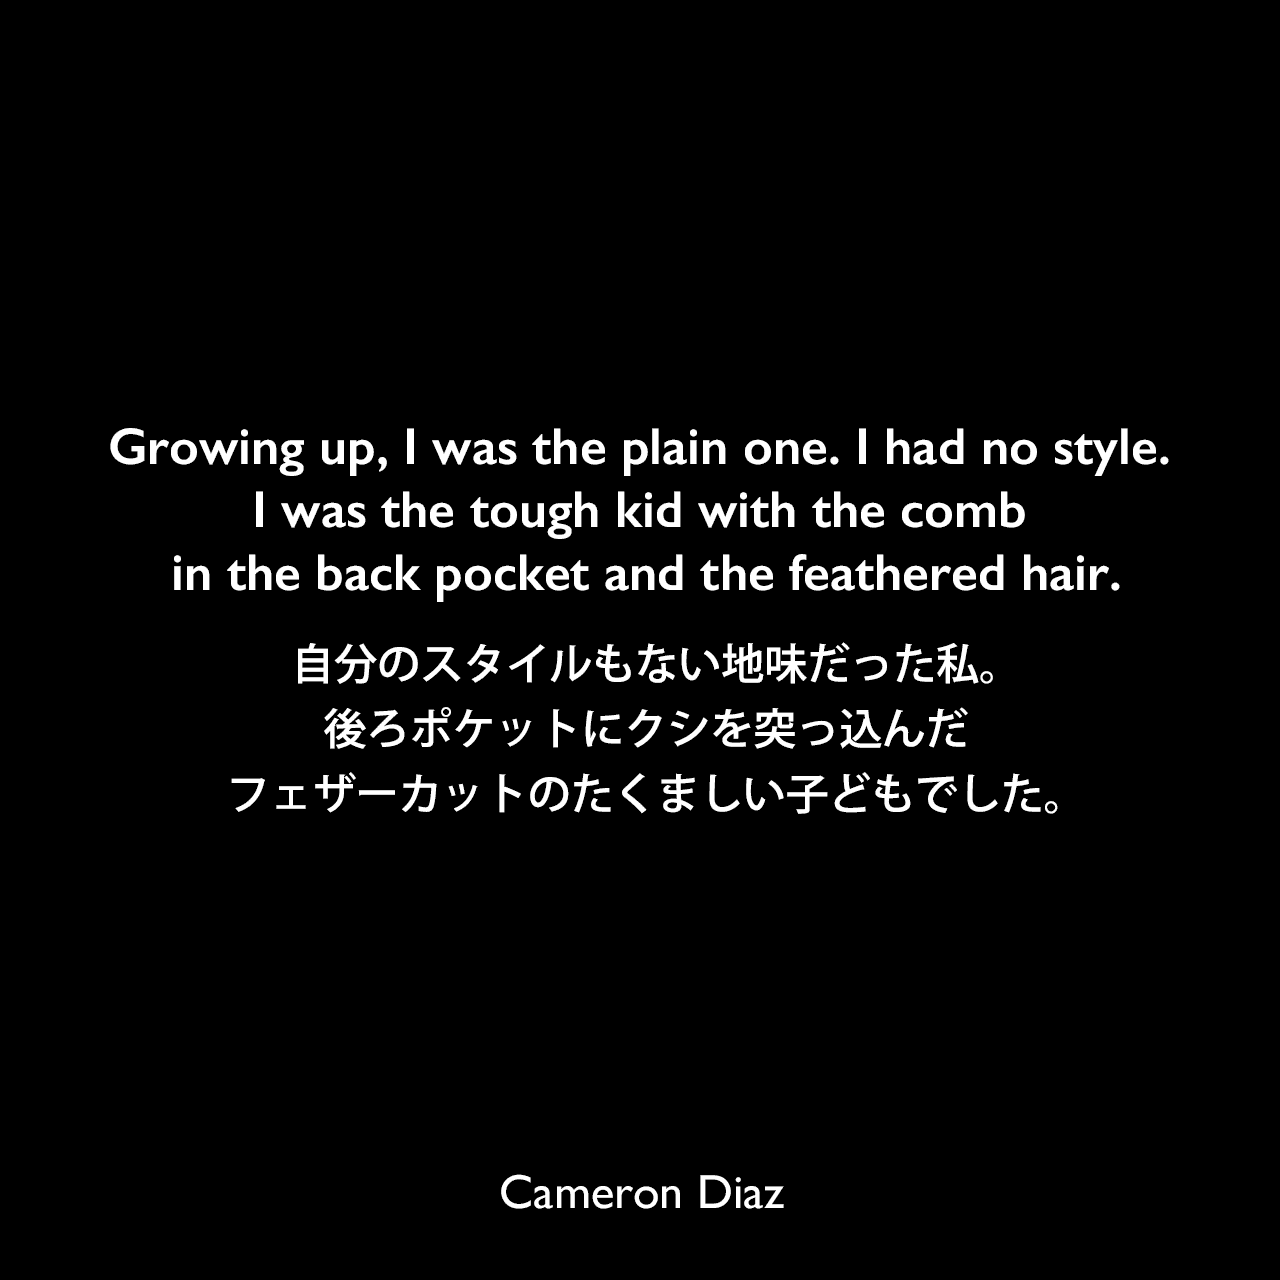 Growing up, I was the plain one. I had no style. I was the tough kid with the comb in the back pocket and the feathered hair.自分のスタイルもない地味だった私。後ろポケットにクシを突っ込んだフェザーカットのたくましい子どもでした。Cameron Diaz